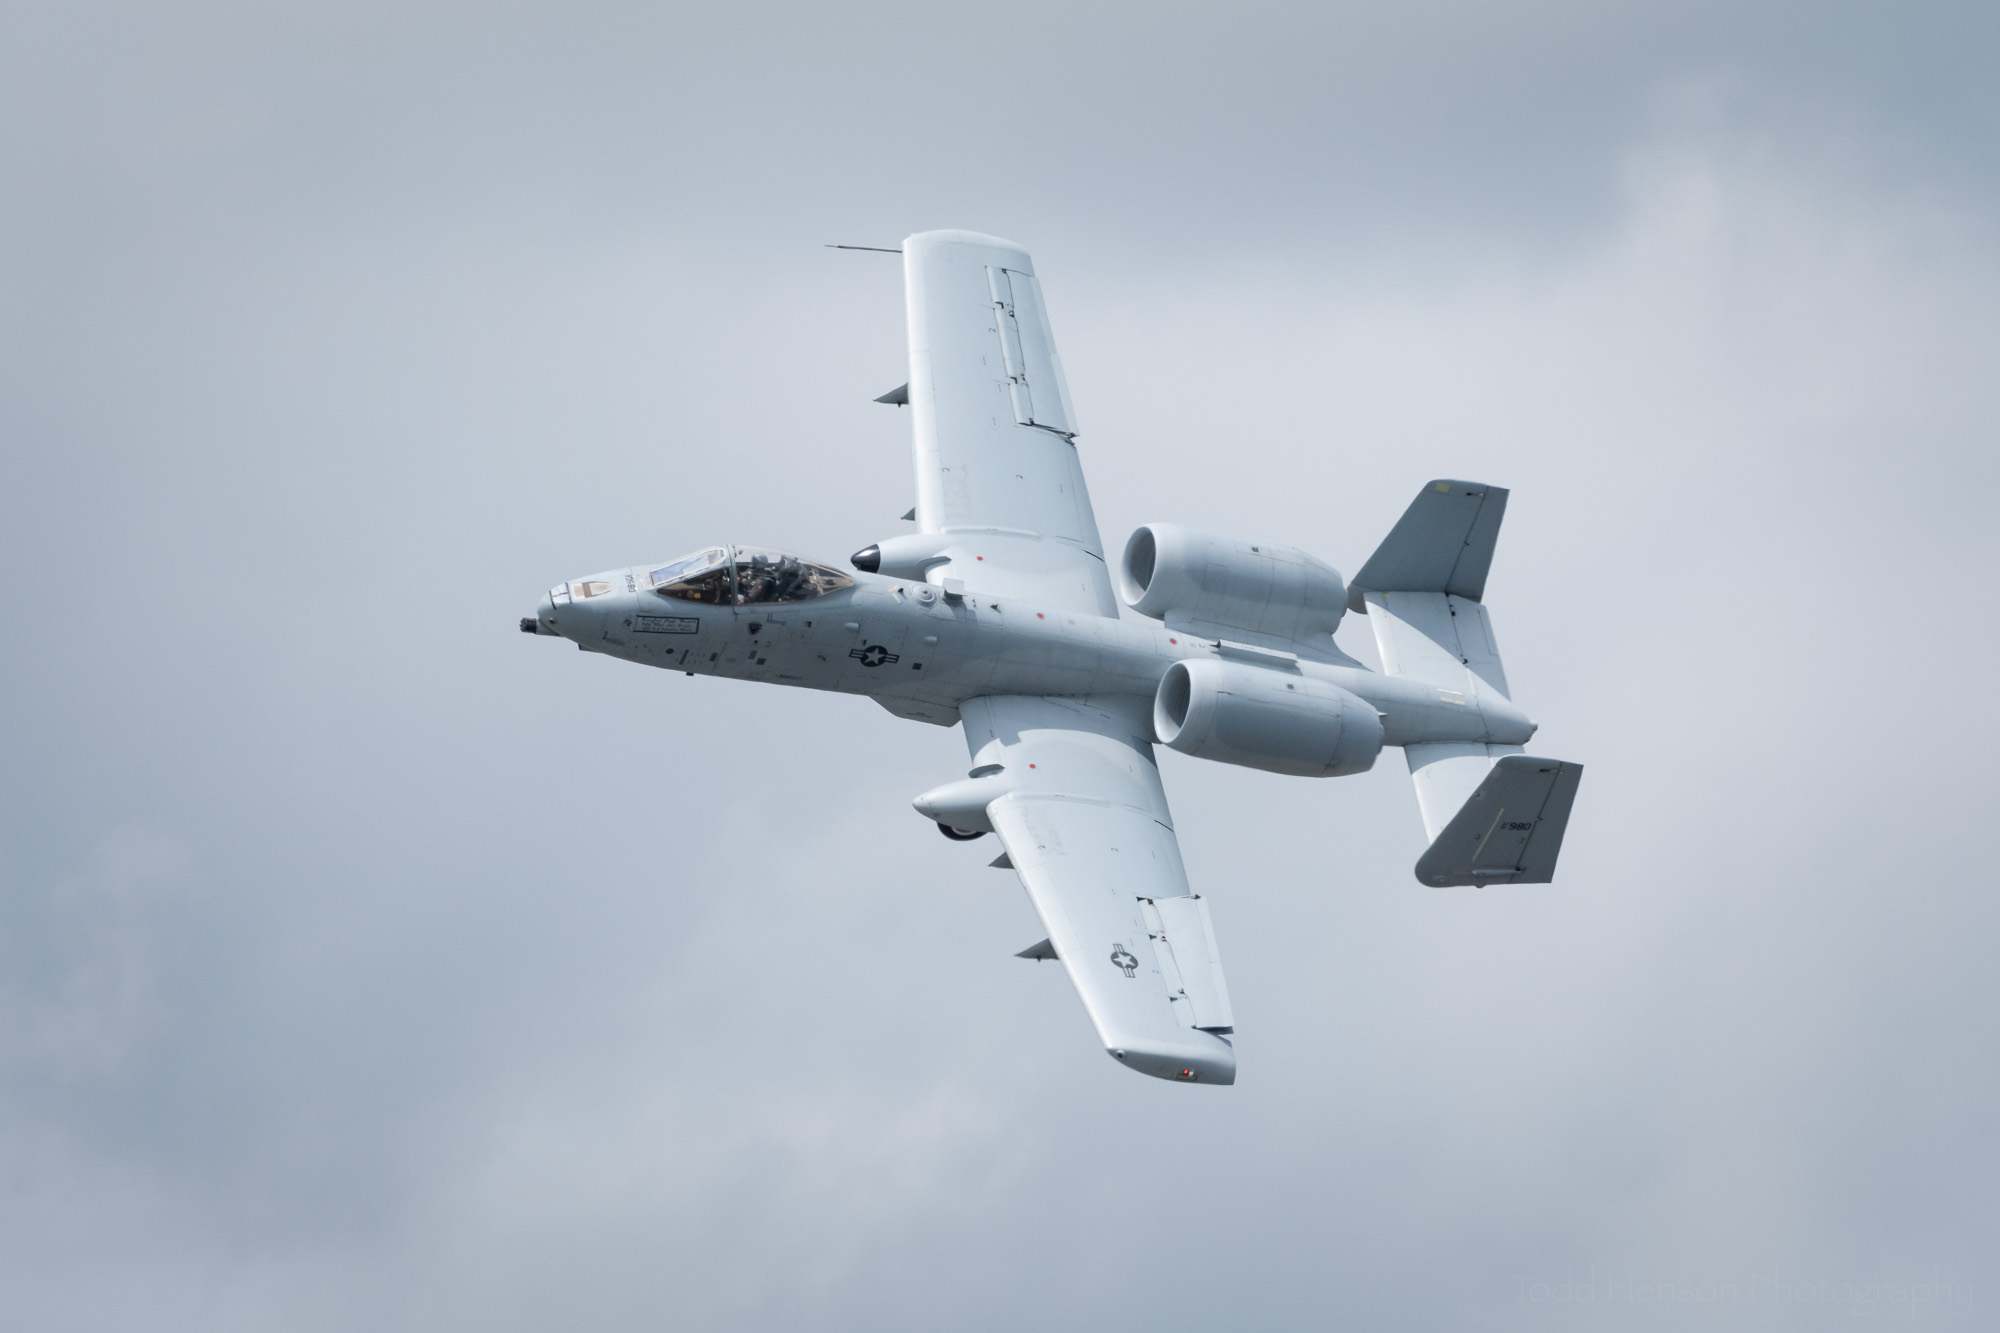 USAF A-10 Thunderbolt performing a flyby.